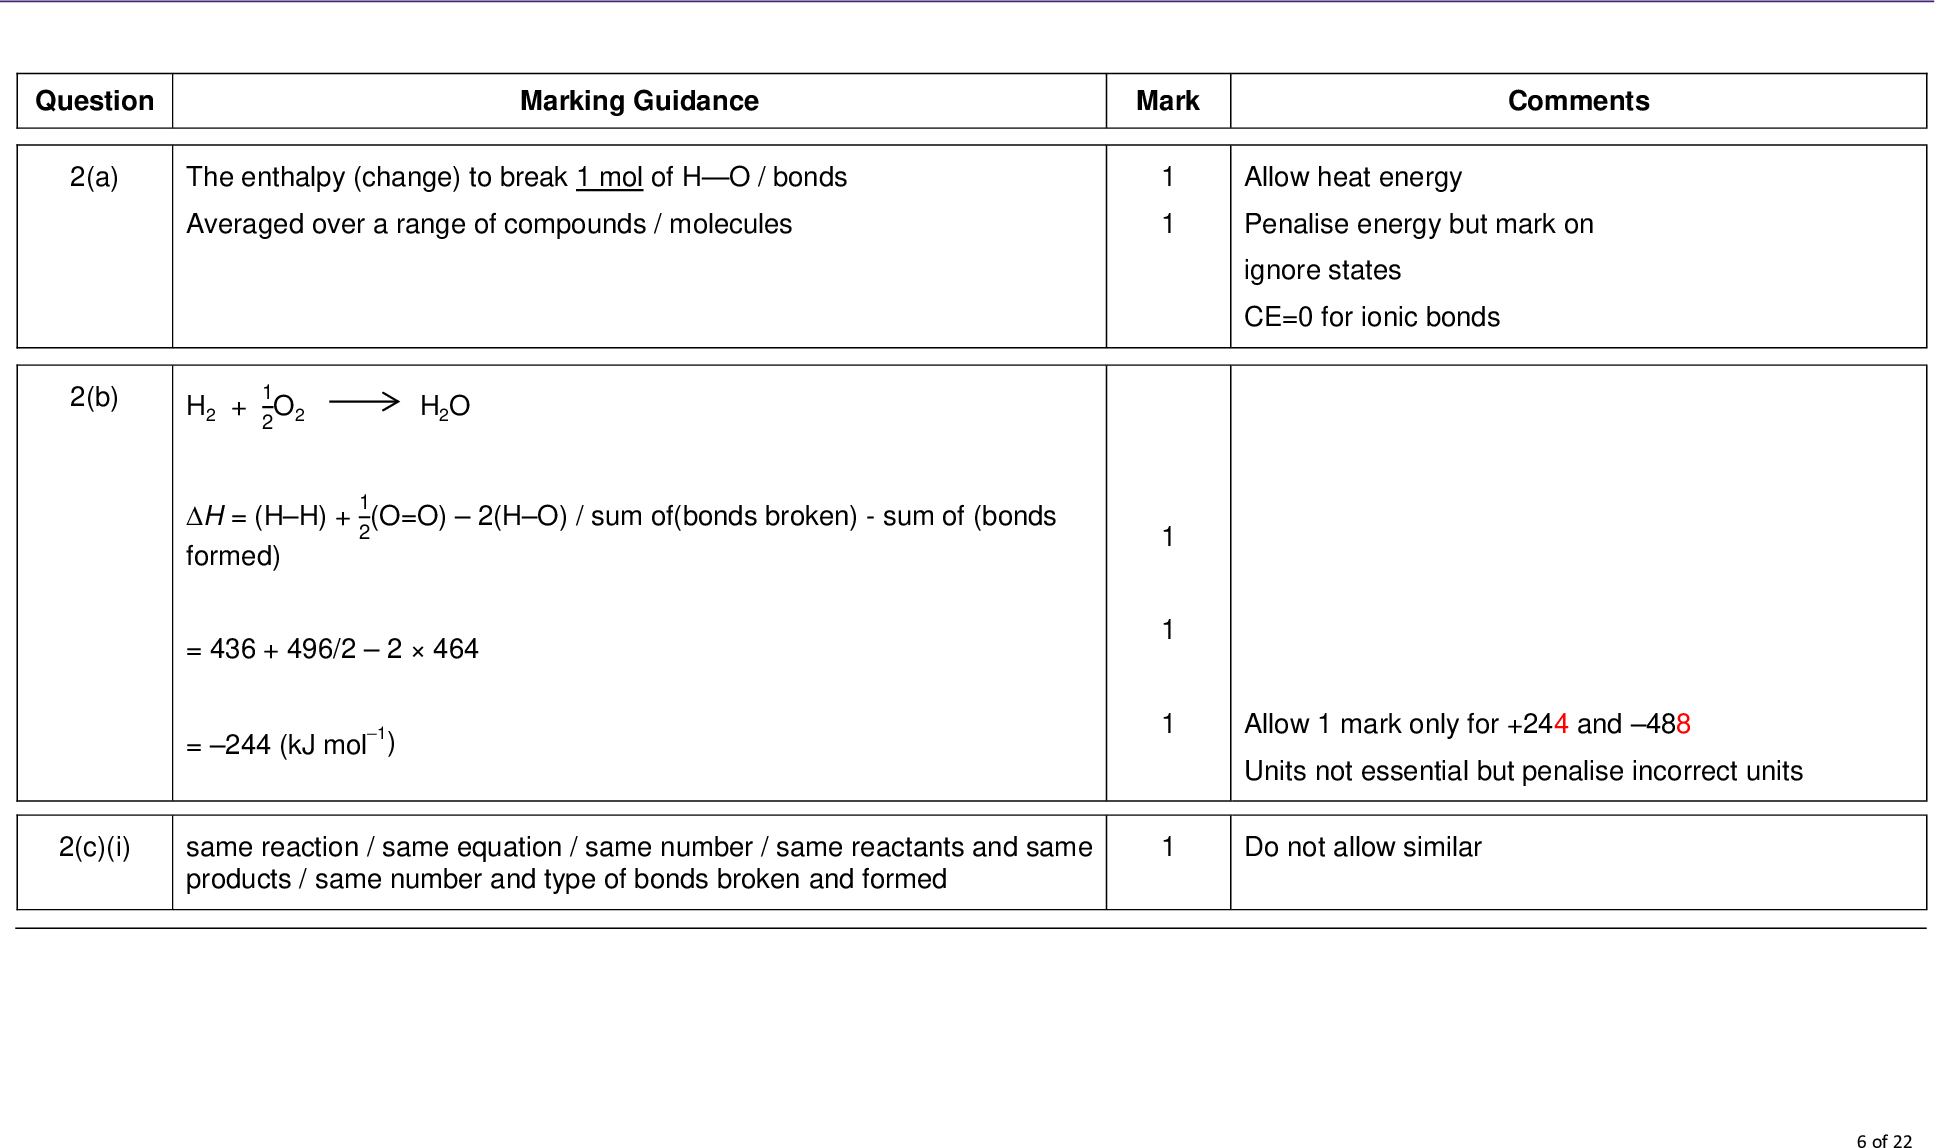 mark scheme a level chemistry chem june marking guidance mark comments allow heat energy penalise energy but mark on ignore states ce for ionic bonds allow mark only for and units not essential but penalise incorrect units do not allow similar question a b the enthalpy change to break mol of h o bonds averaged over a range of compounds molecules o o h o sum of bonds broken sum of bonds o h o h h h h formed kj mol c i same reaction same equation same number same reactants and same products same number and type of bonds broken and formed of c ii there must be a slight difference between the actual bond enthalpy in water and mean bond enthalpies for the o h bond in other molecules mark scheme a level chemistry chem june allow bond enthalpy value for enthalpy of formation may not be under standard conditions allow reference to bond energy rather than bond enthalpy do not allow heat loss or experimental error do not allow mean bond enthalpies are not accurate of